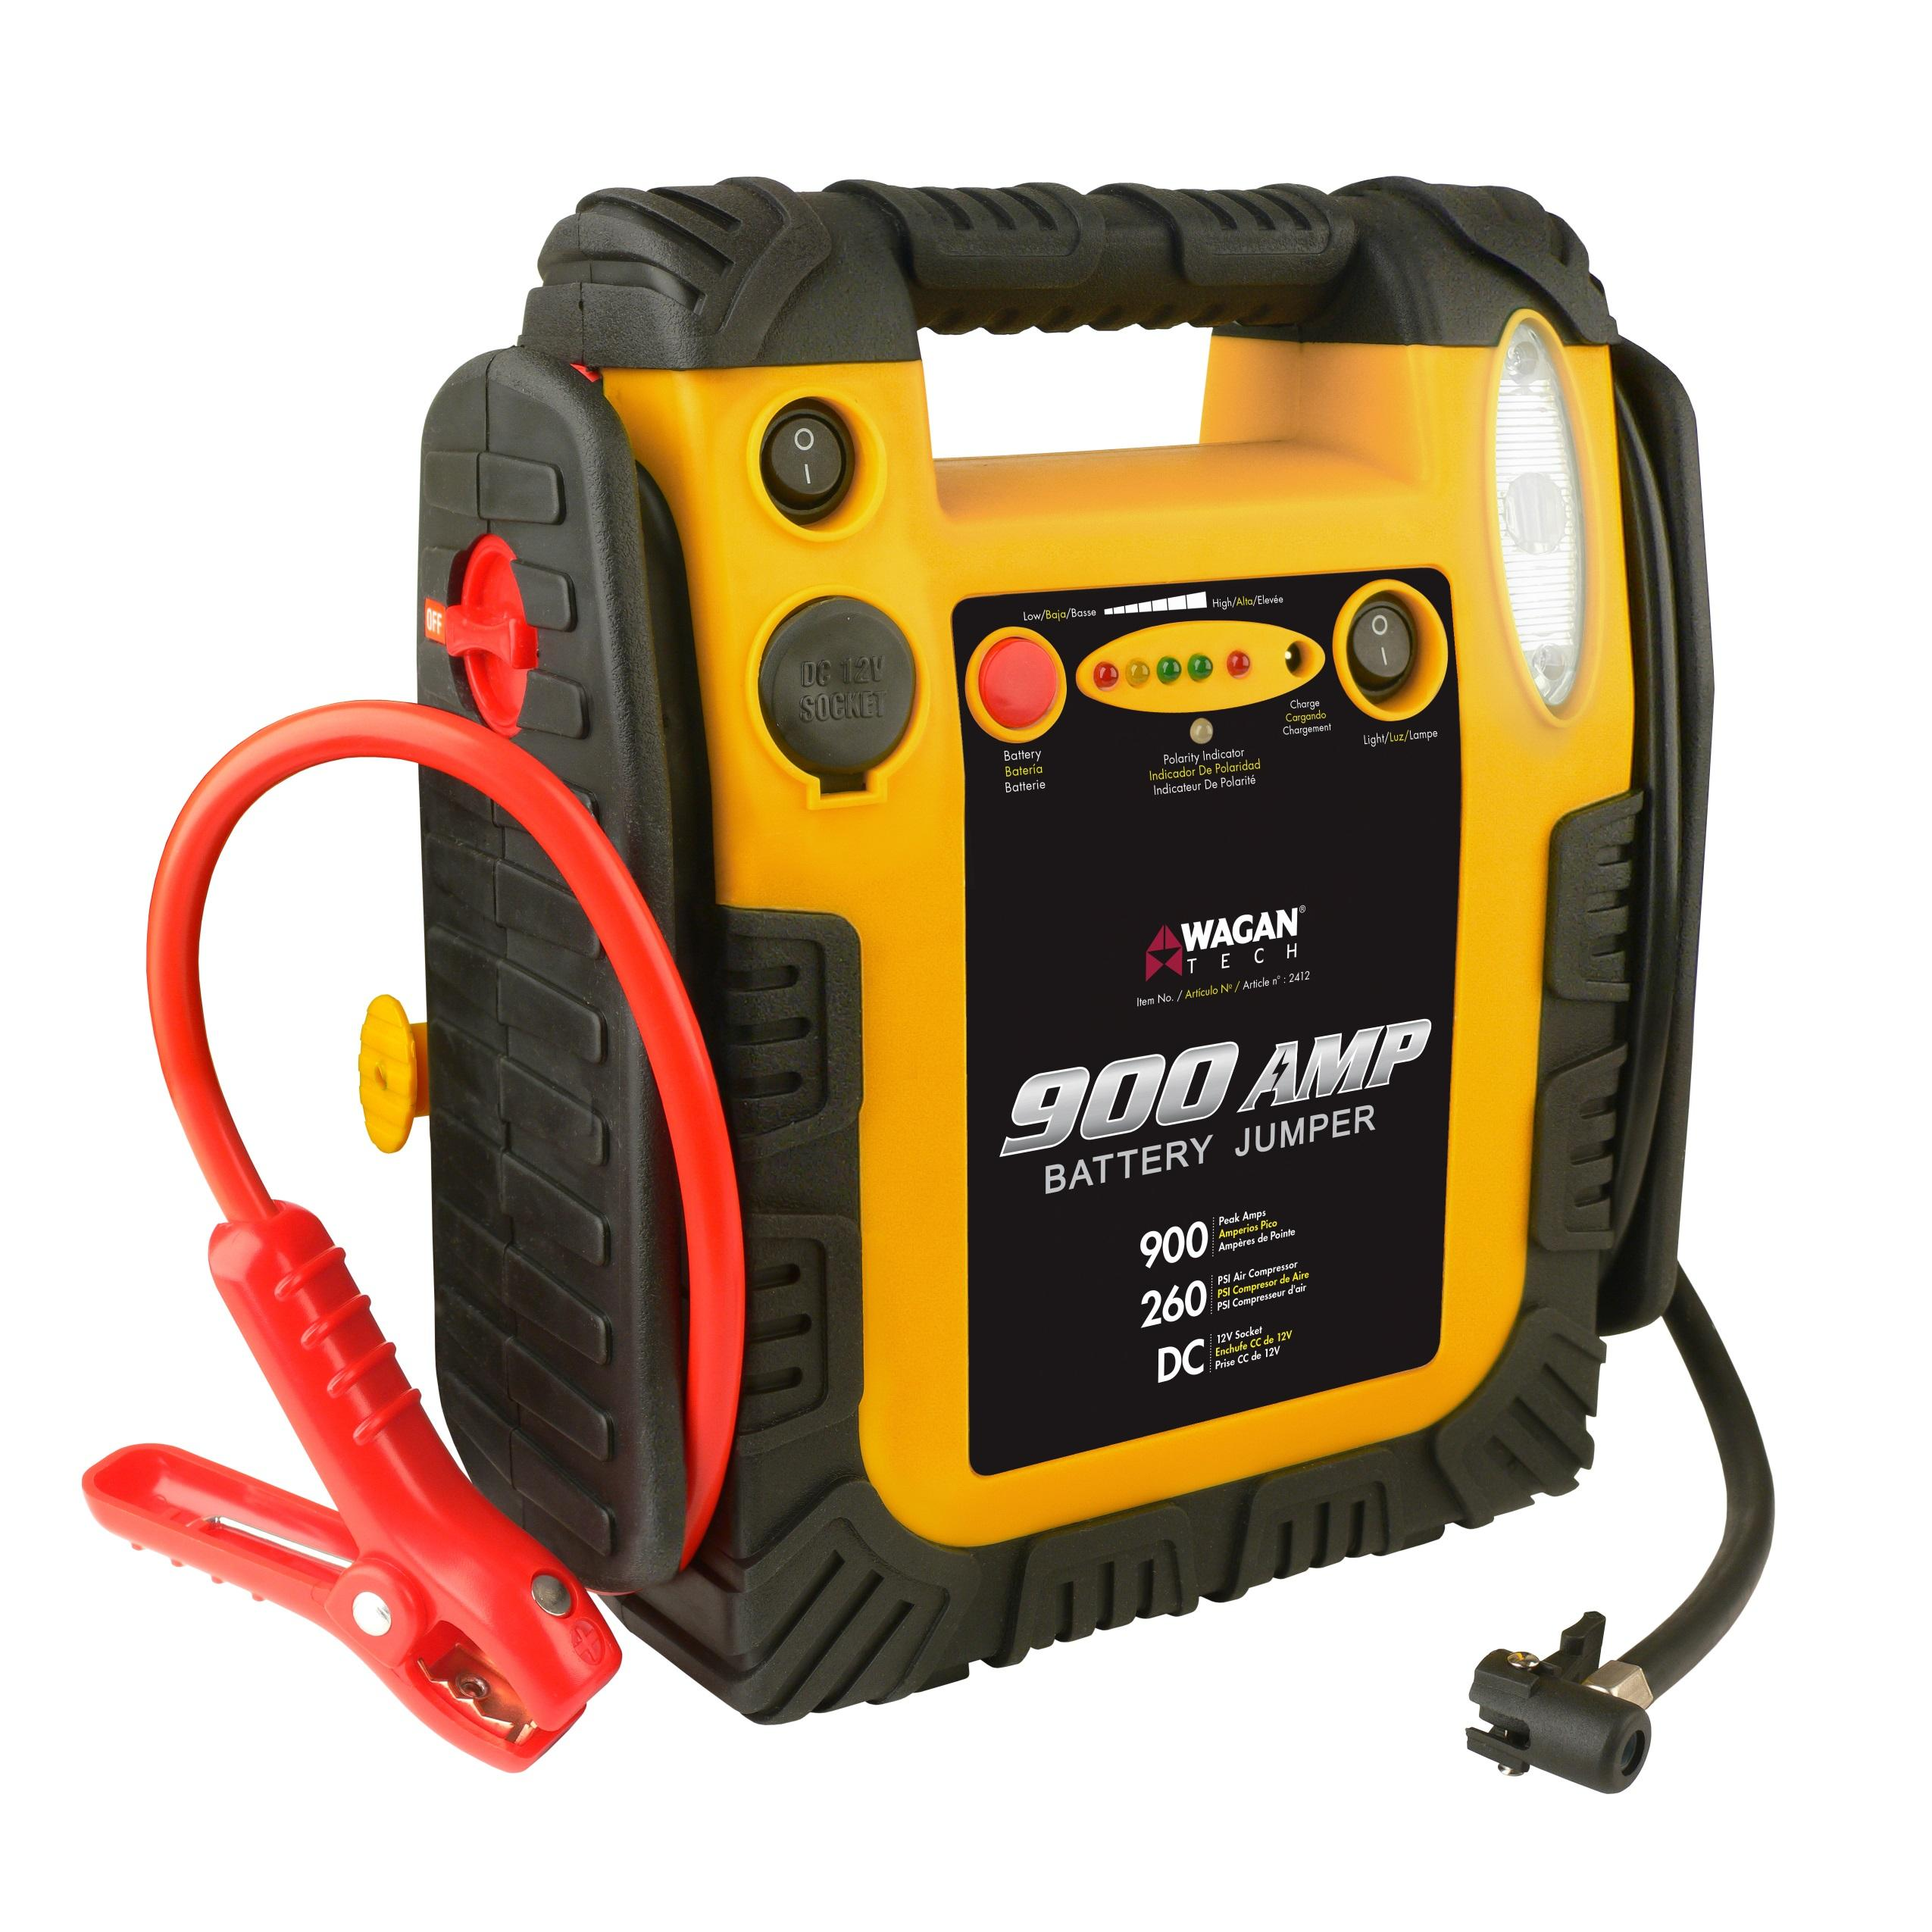 Amazon.com: Wagan 900 Amp Battery Jumper With Air